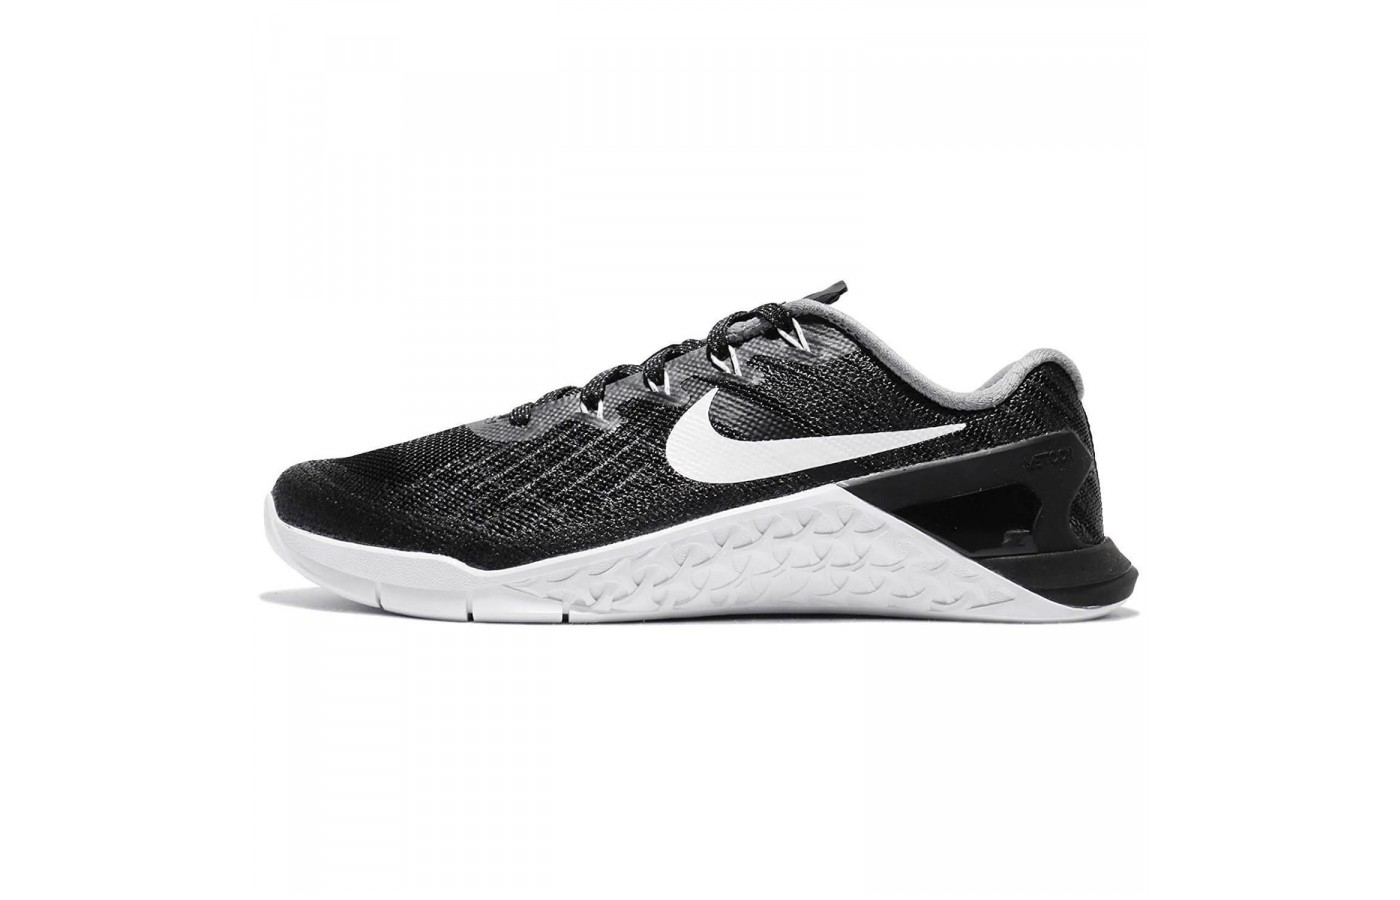 f67b3120597 Nike Metcon 3 Reviewed - To Buy or Not in Apr 2019